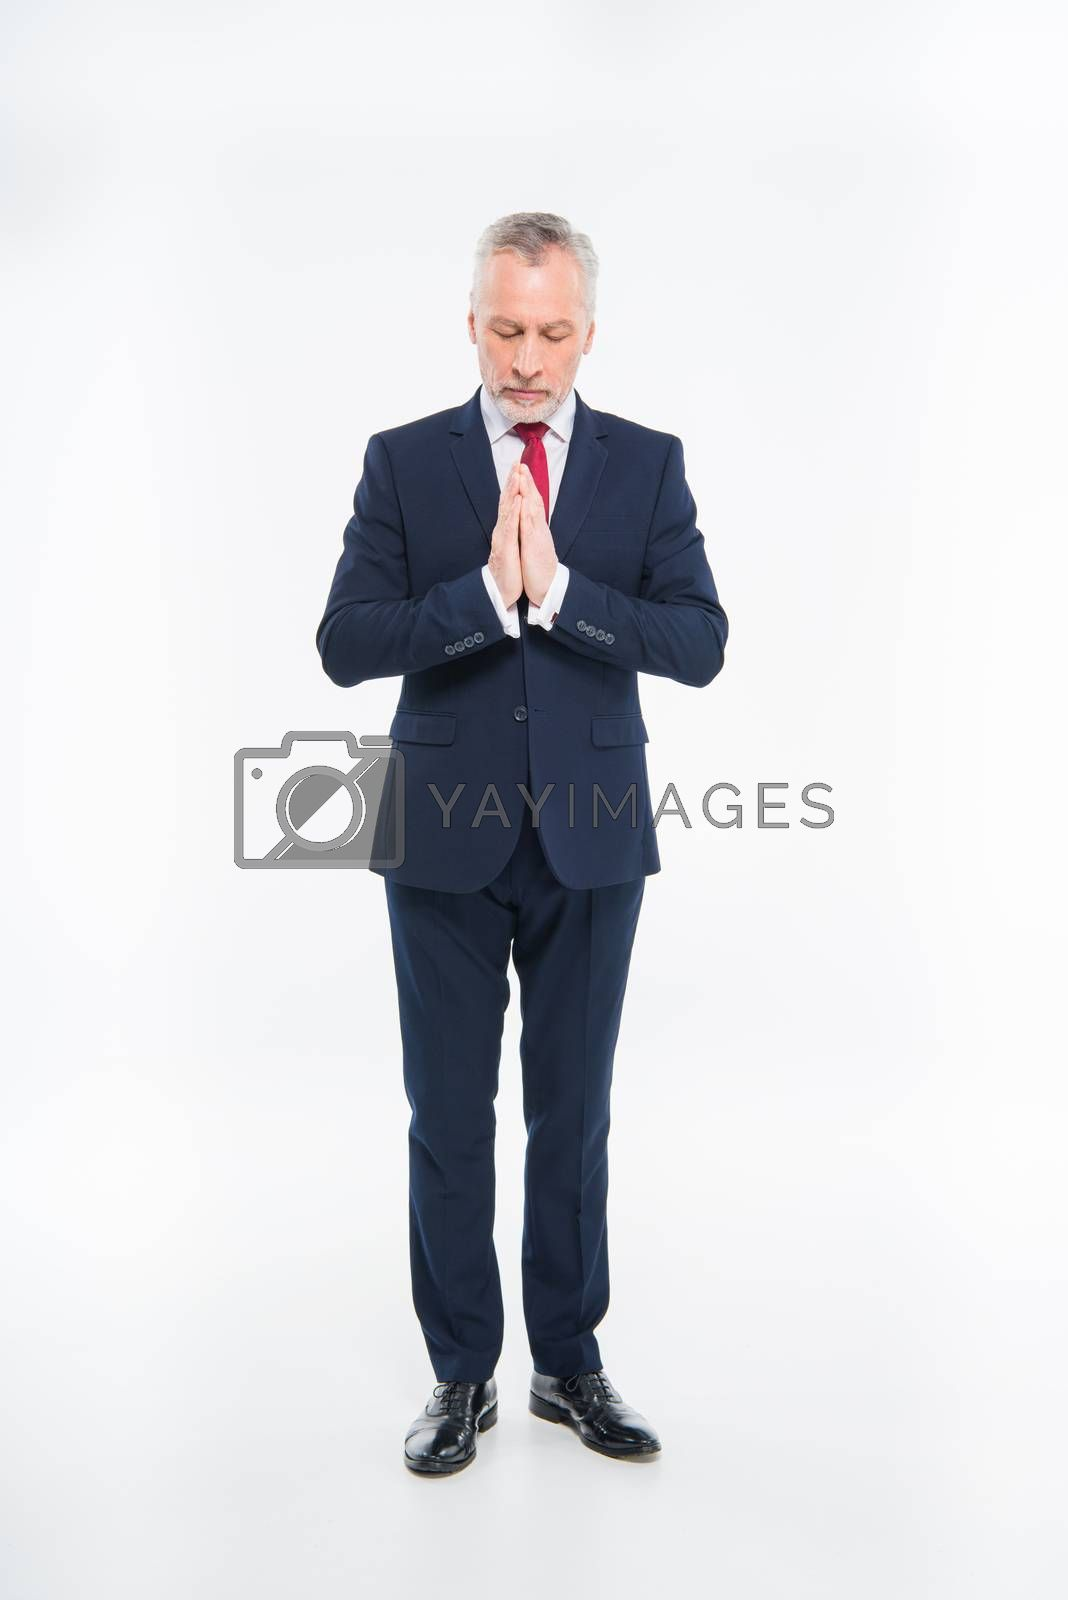 Royalty free image of Mature businessman praying by LightFieldStudios